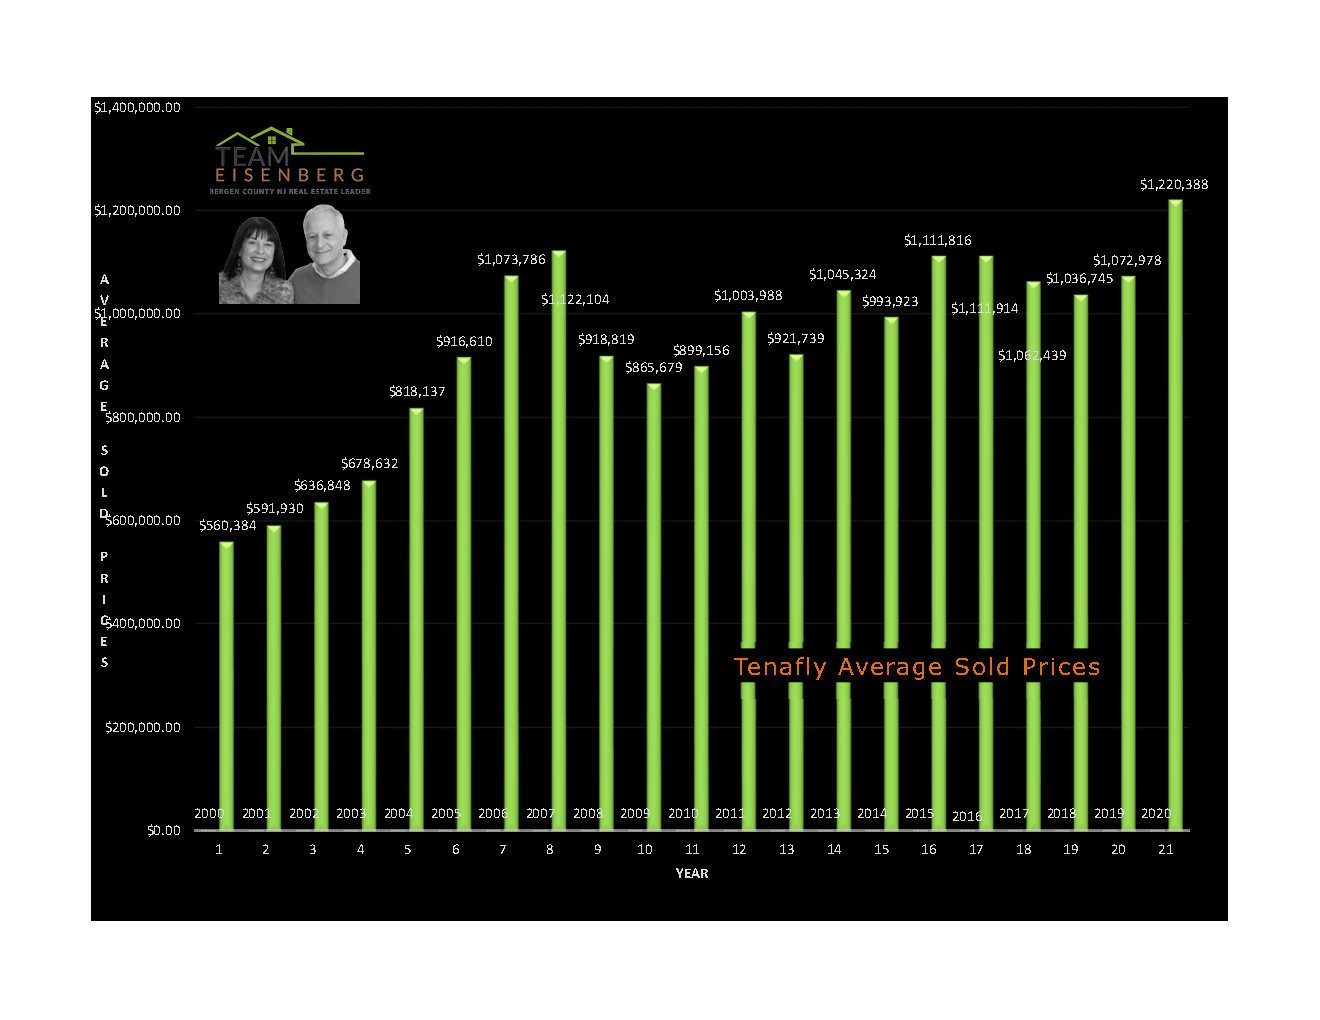 Tenafly   Average Sold Prices   2000-2020